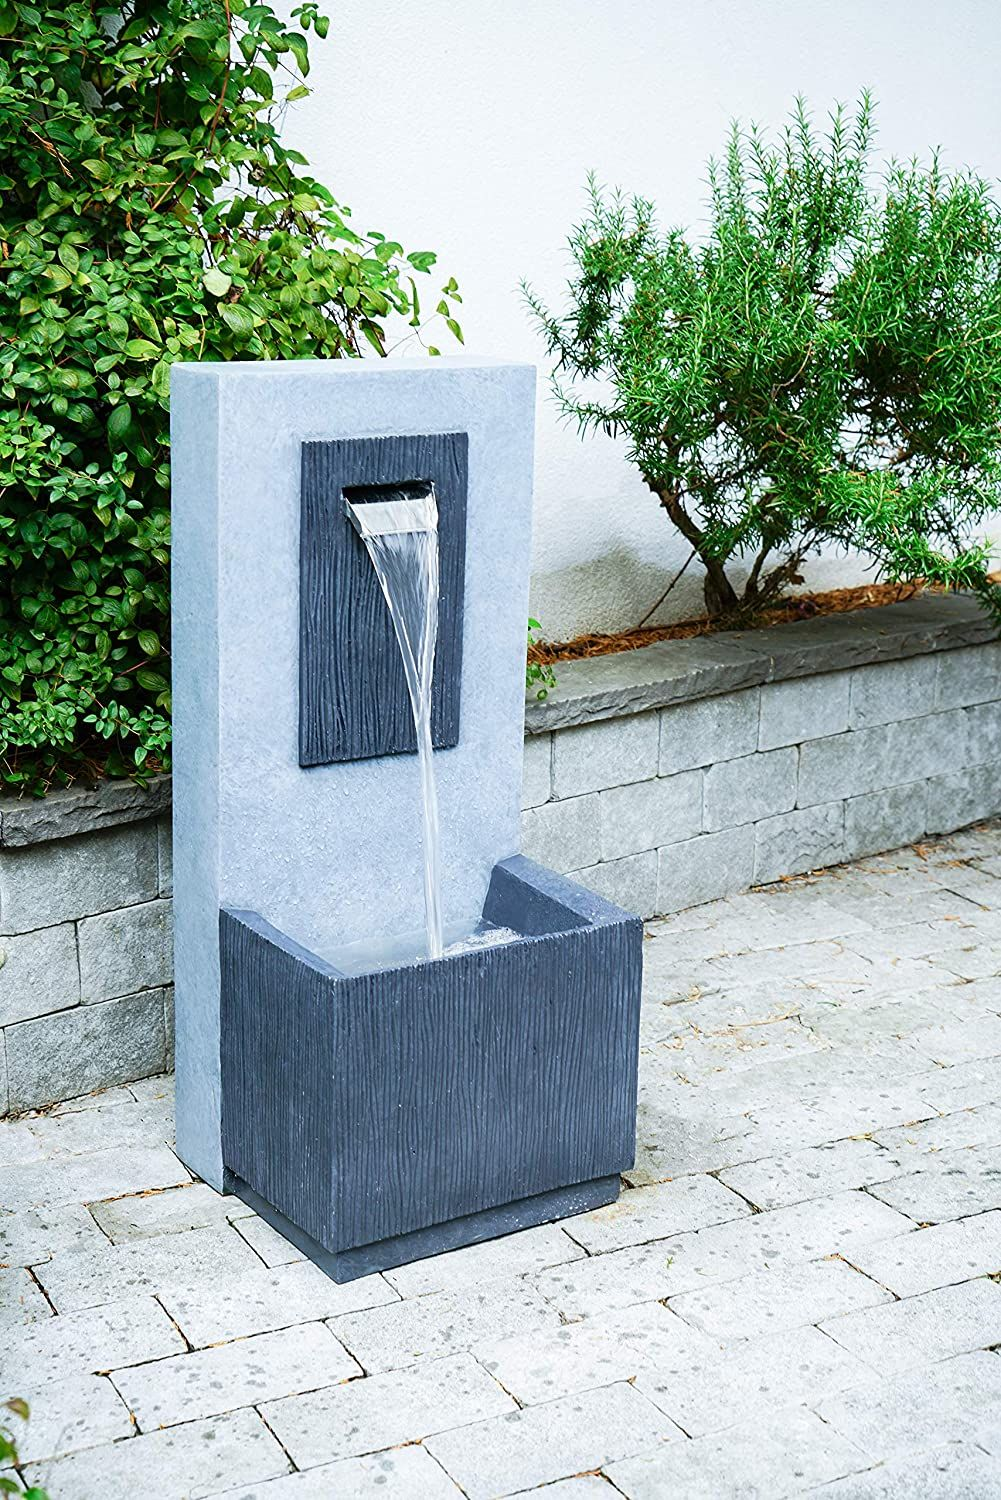 Buy Outdoor Spiral Water Feature By Ivyline From The Next Uk Online Shop Water Fountains Outdoor Water Features In The Garden Garden Water Feature